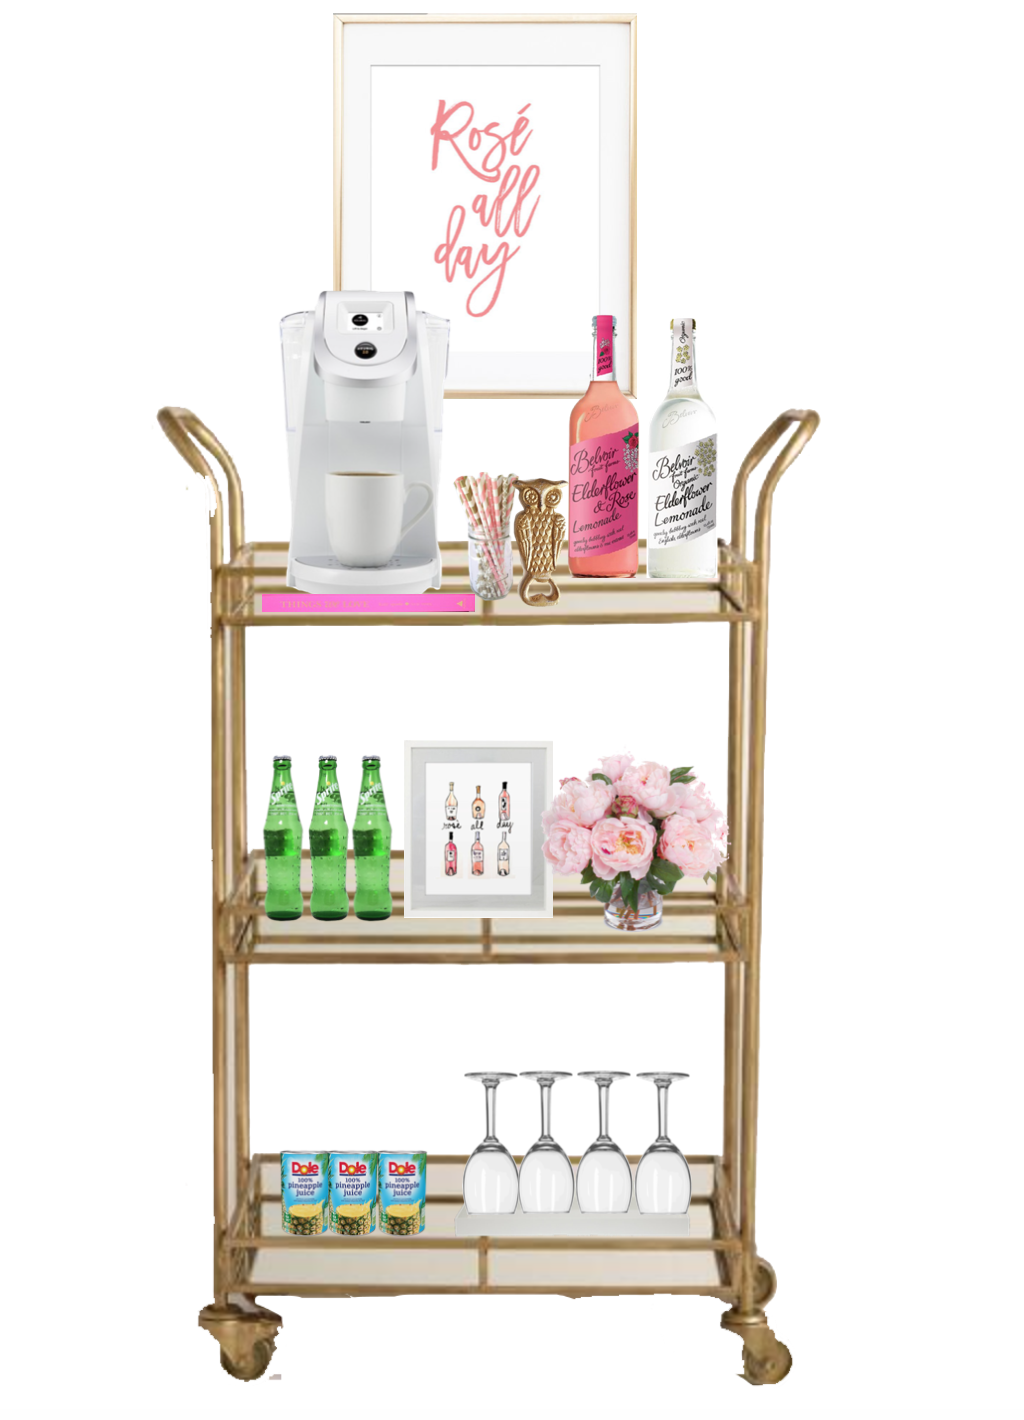 My Bar Cart + How I Easily Decorated it using photoshop! home decor by lauren lindmark on daily dose of charm